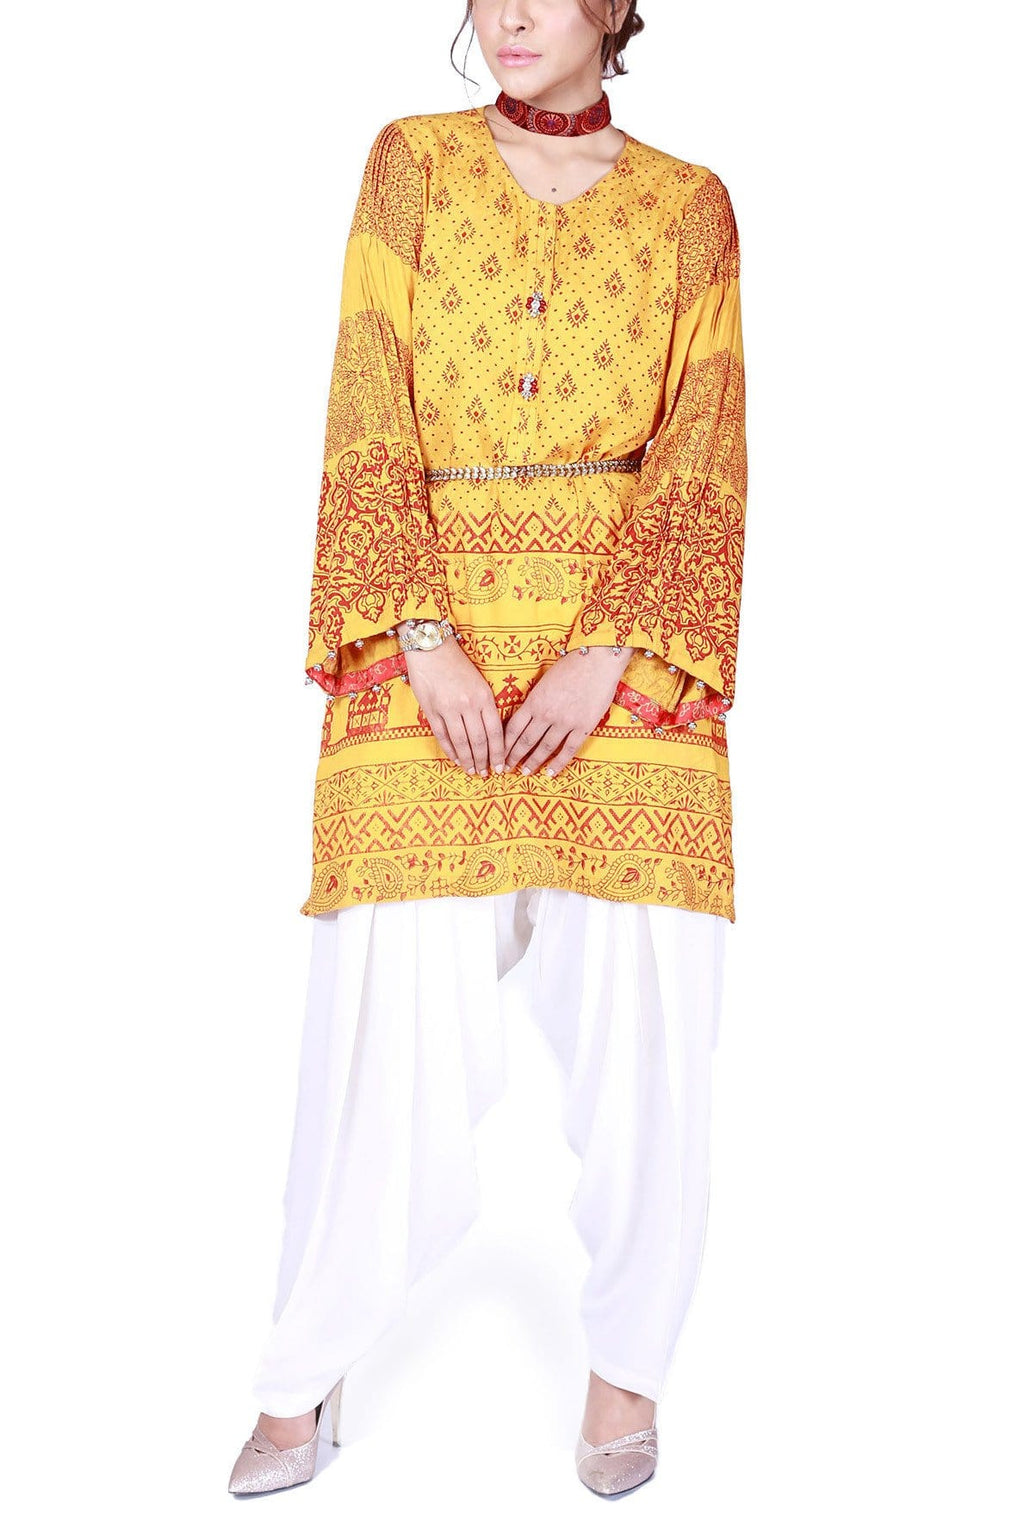 FnkAsia - Yellow Hand Block Print Cotton Shirt with Pants